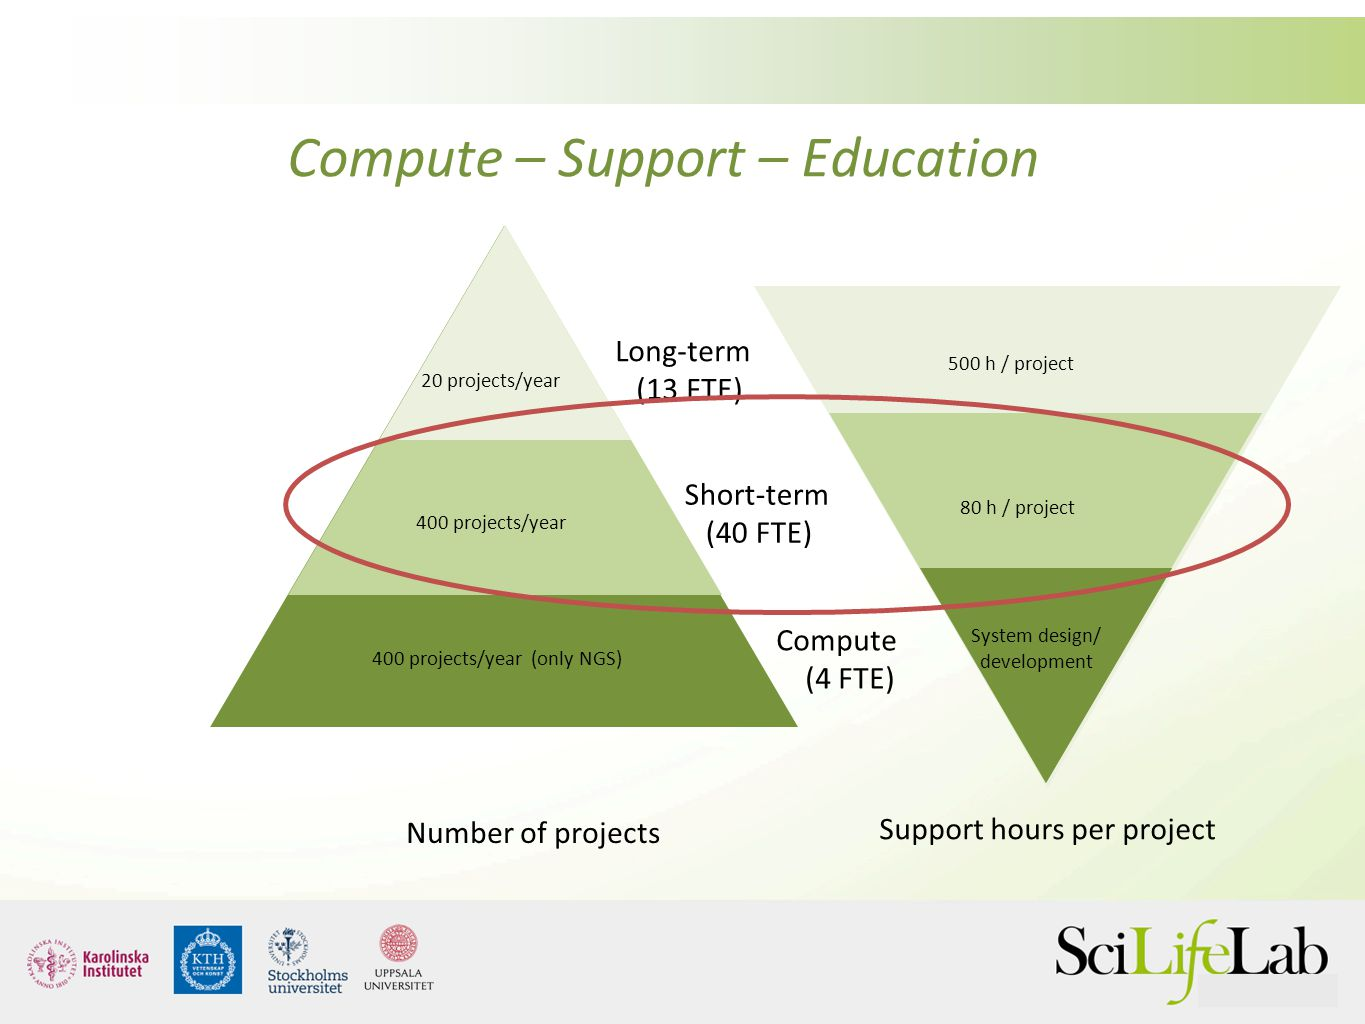 Short-term (40 FTE) Long-term (13 FTE) Compute (4 FTE) Number of projects Support hours per project 20 projects/year 400 projects/year (only NGS) 400